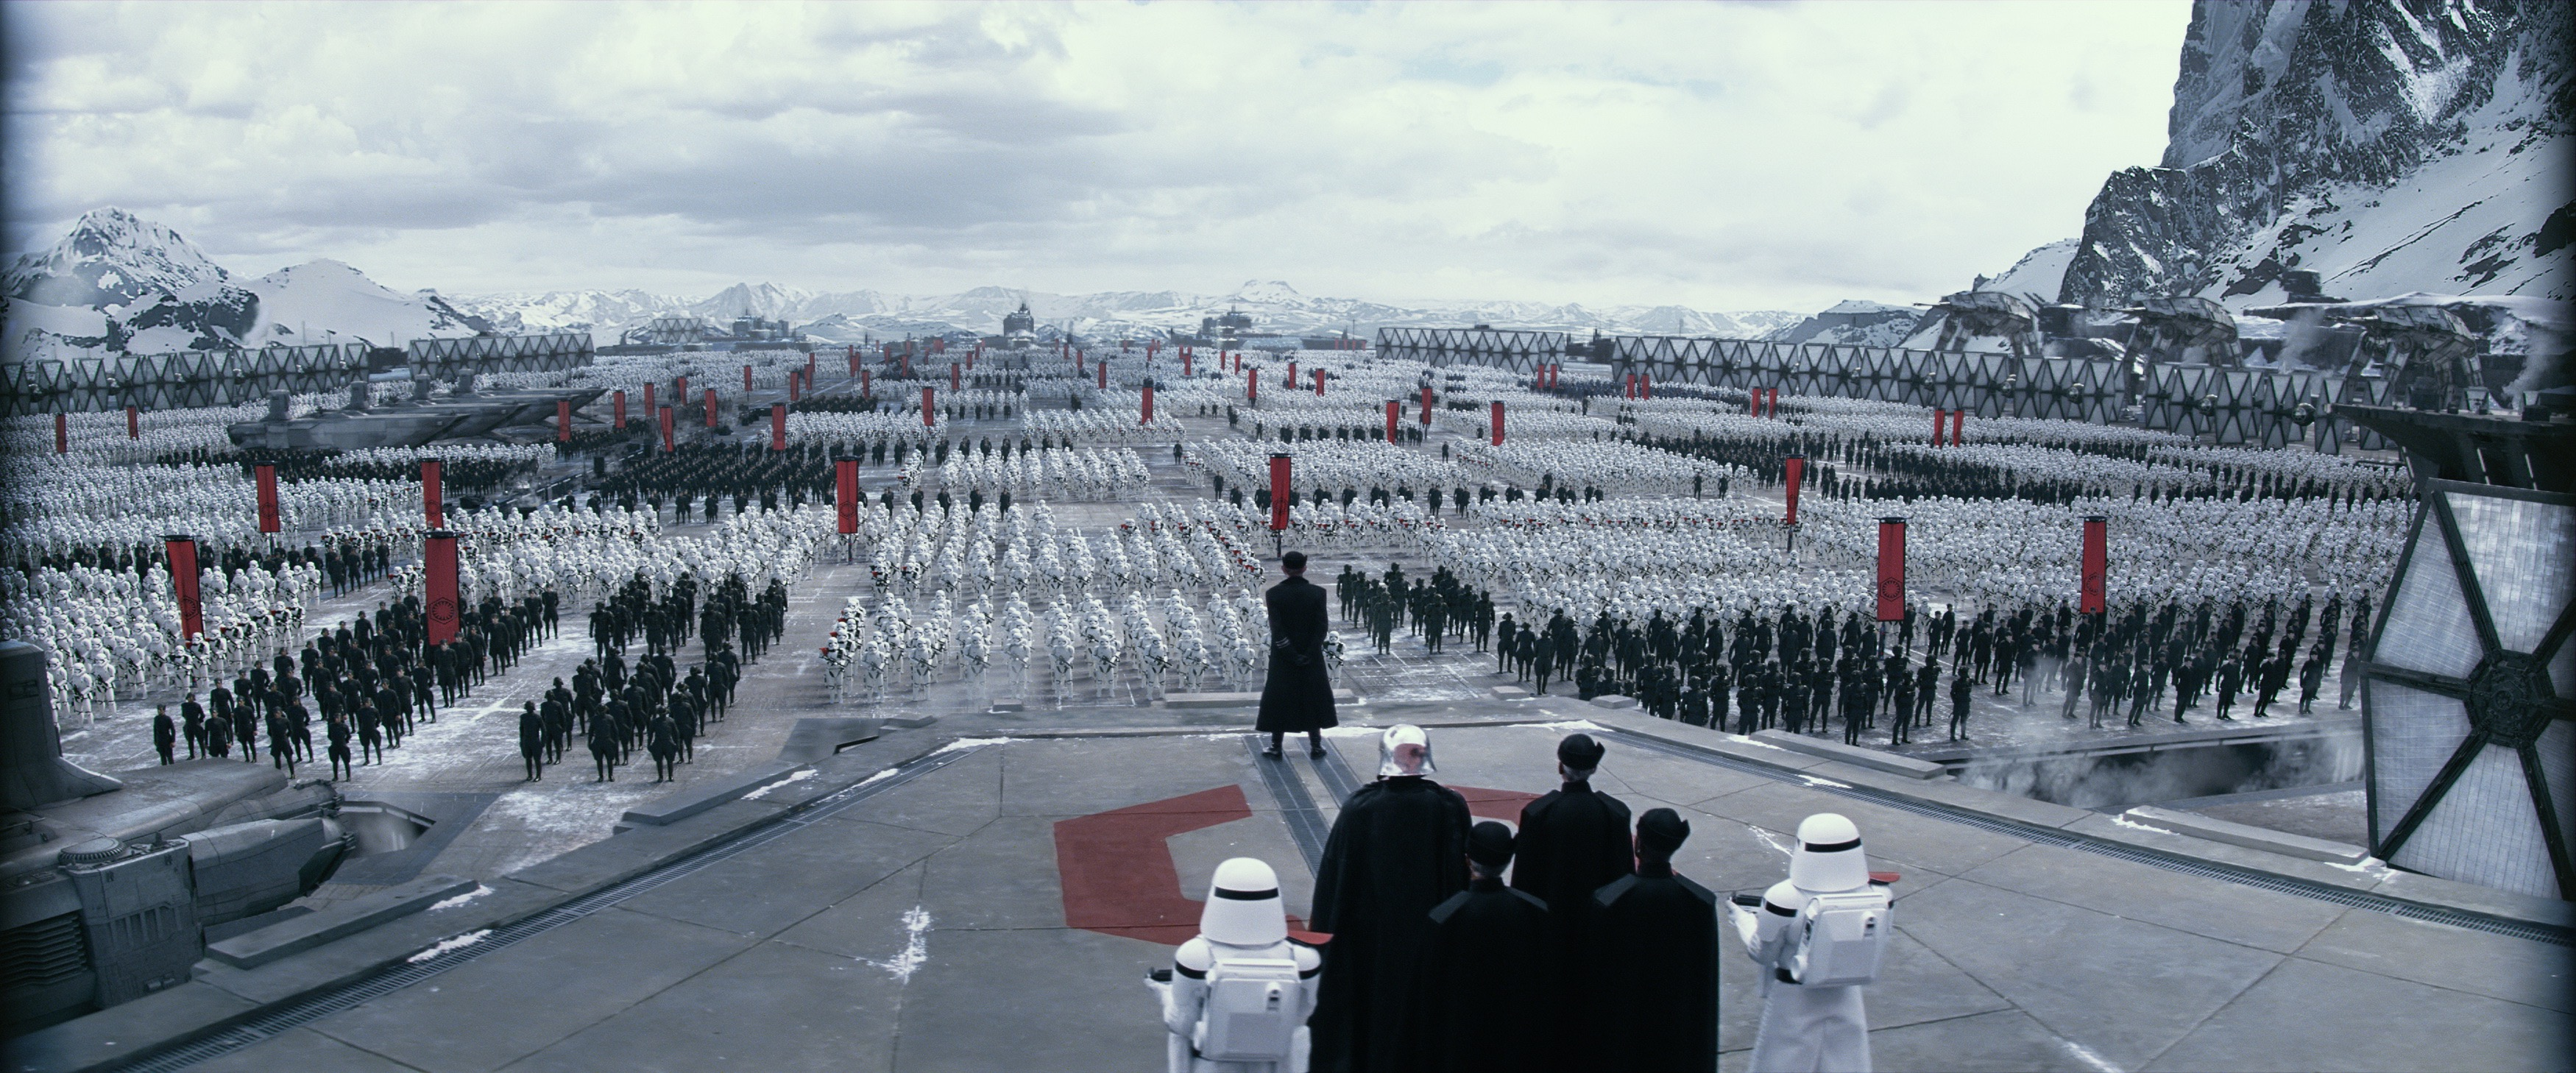 Stormtroopers gather like Nazis